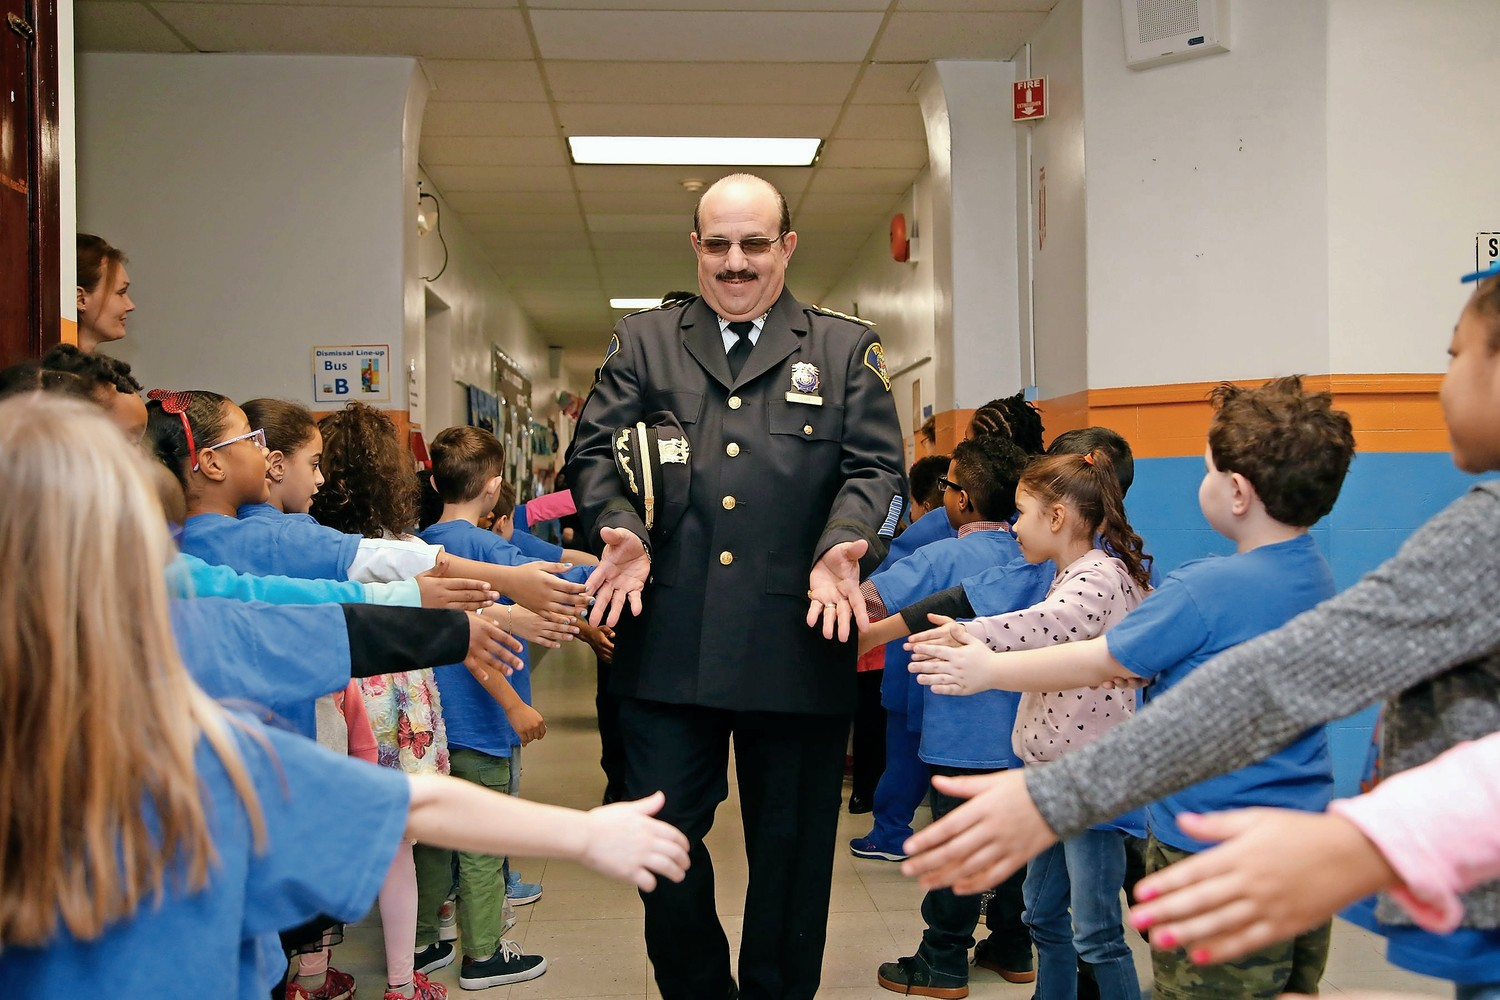 Malverne Police Reserves Chief Bob Oliva was welcomed at Downing School.